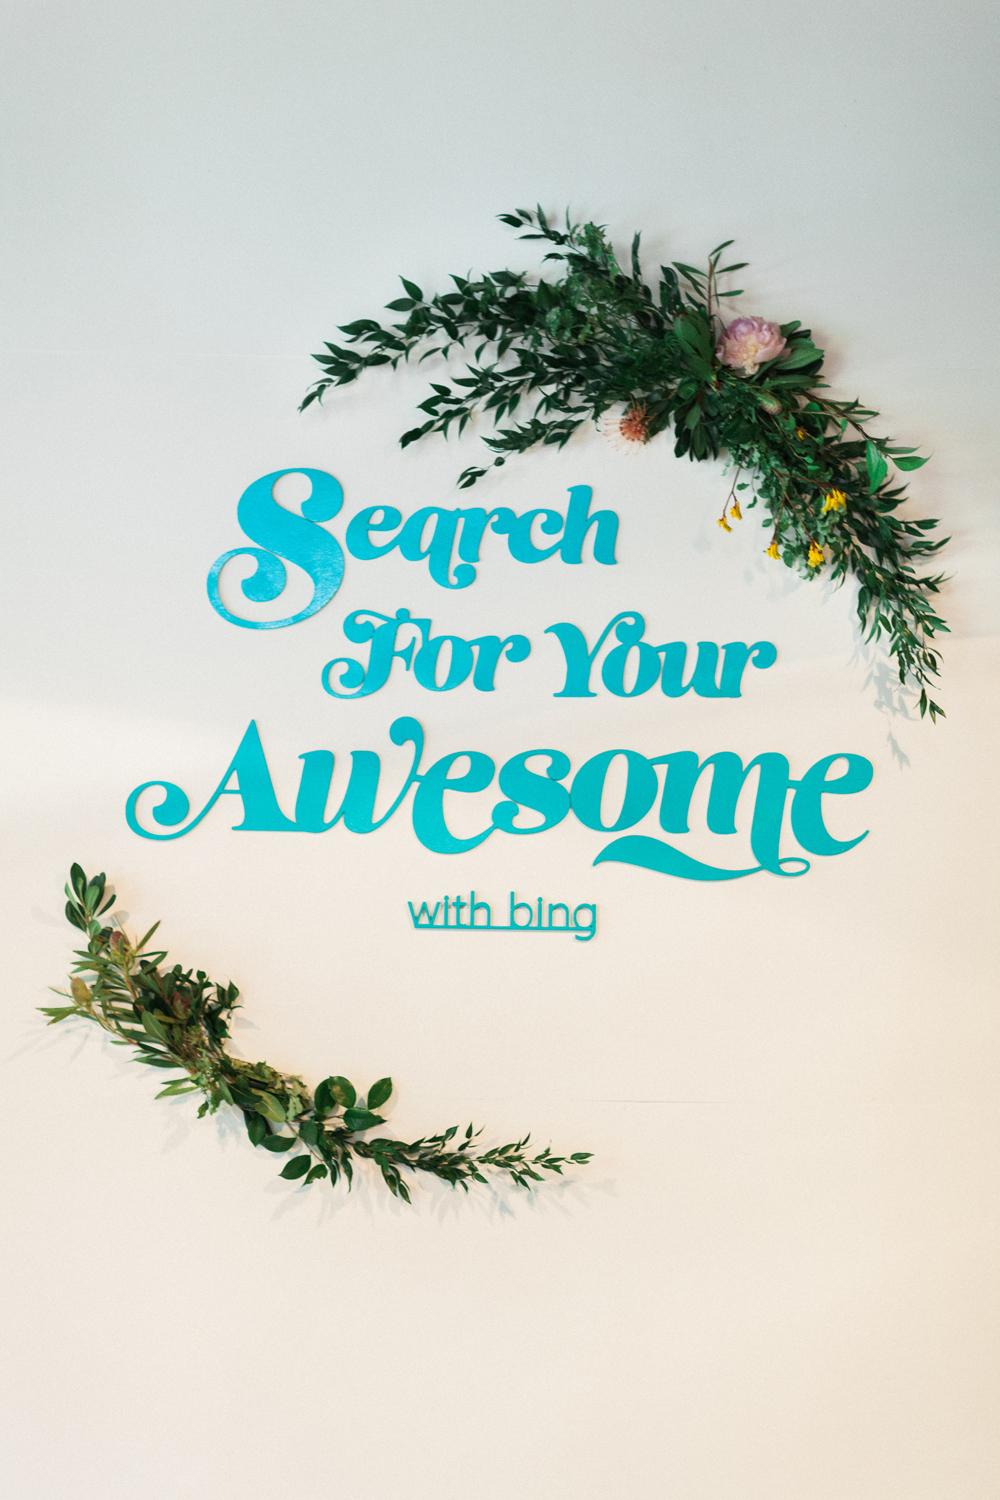 Bing Search for Your Awesome_Homespun ATL_058.jpg